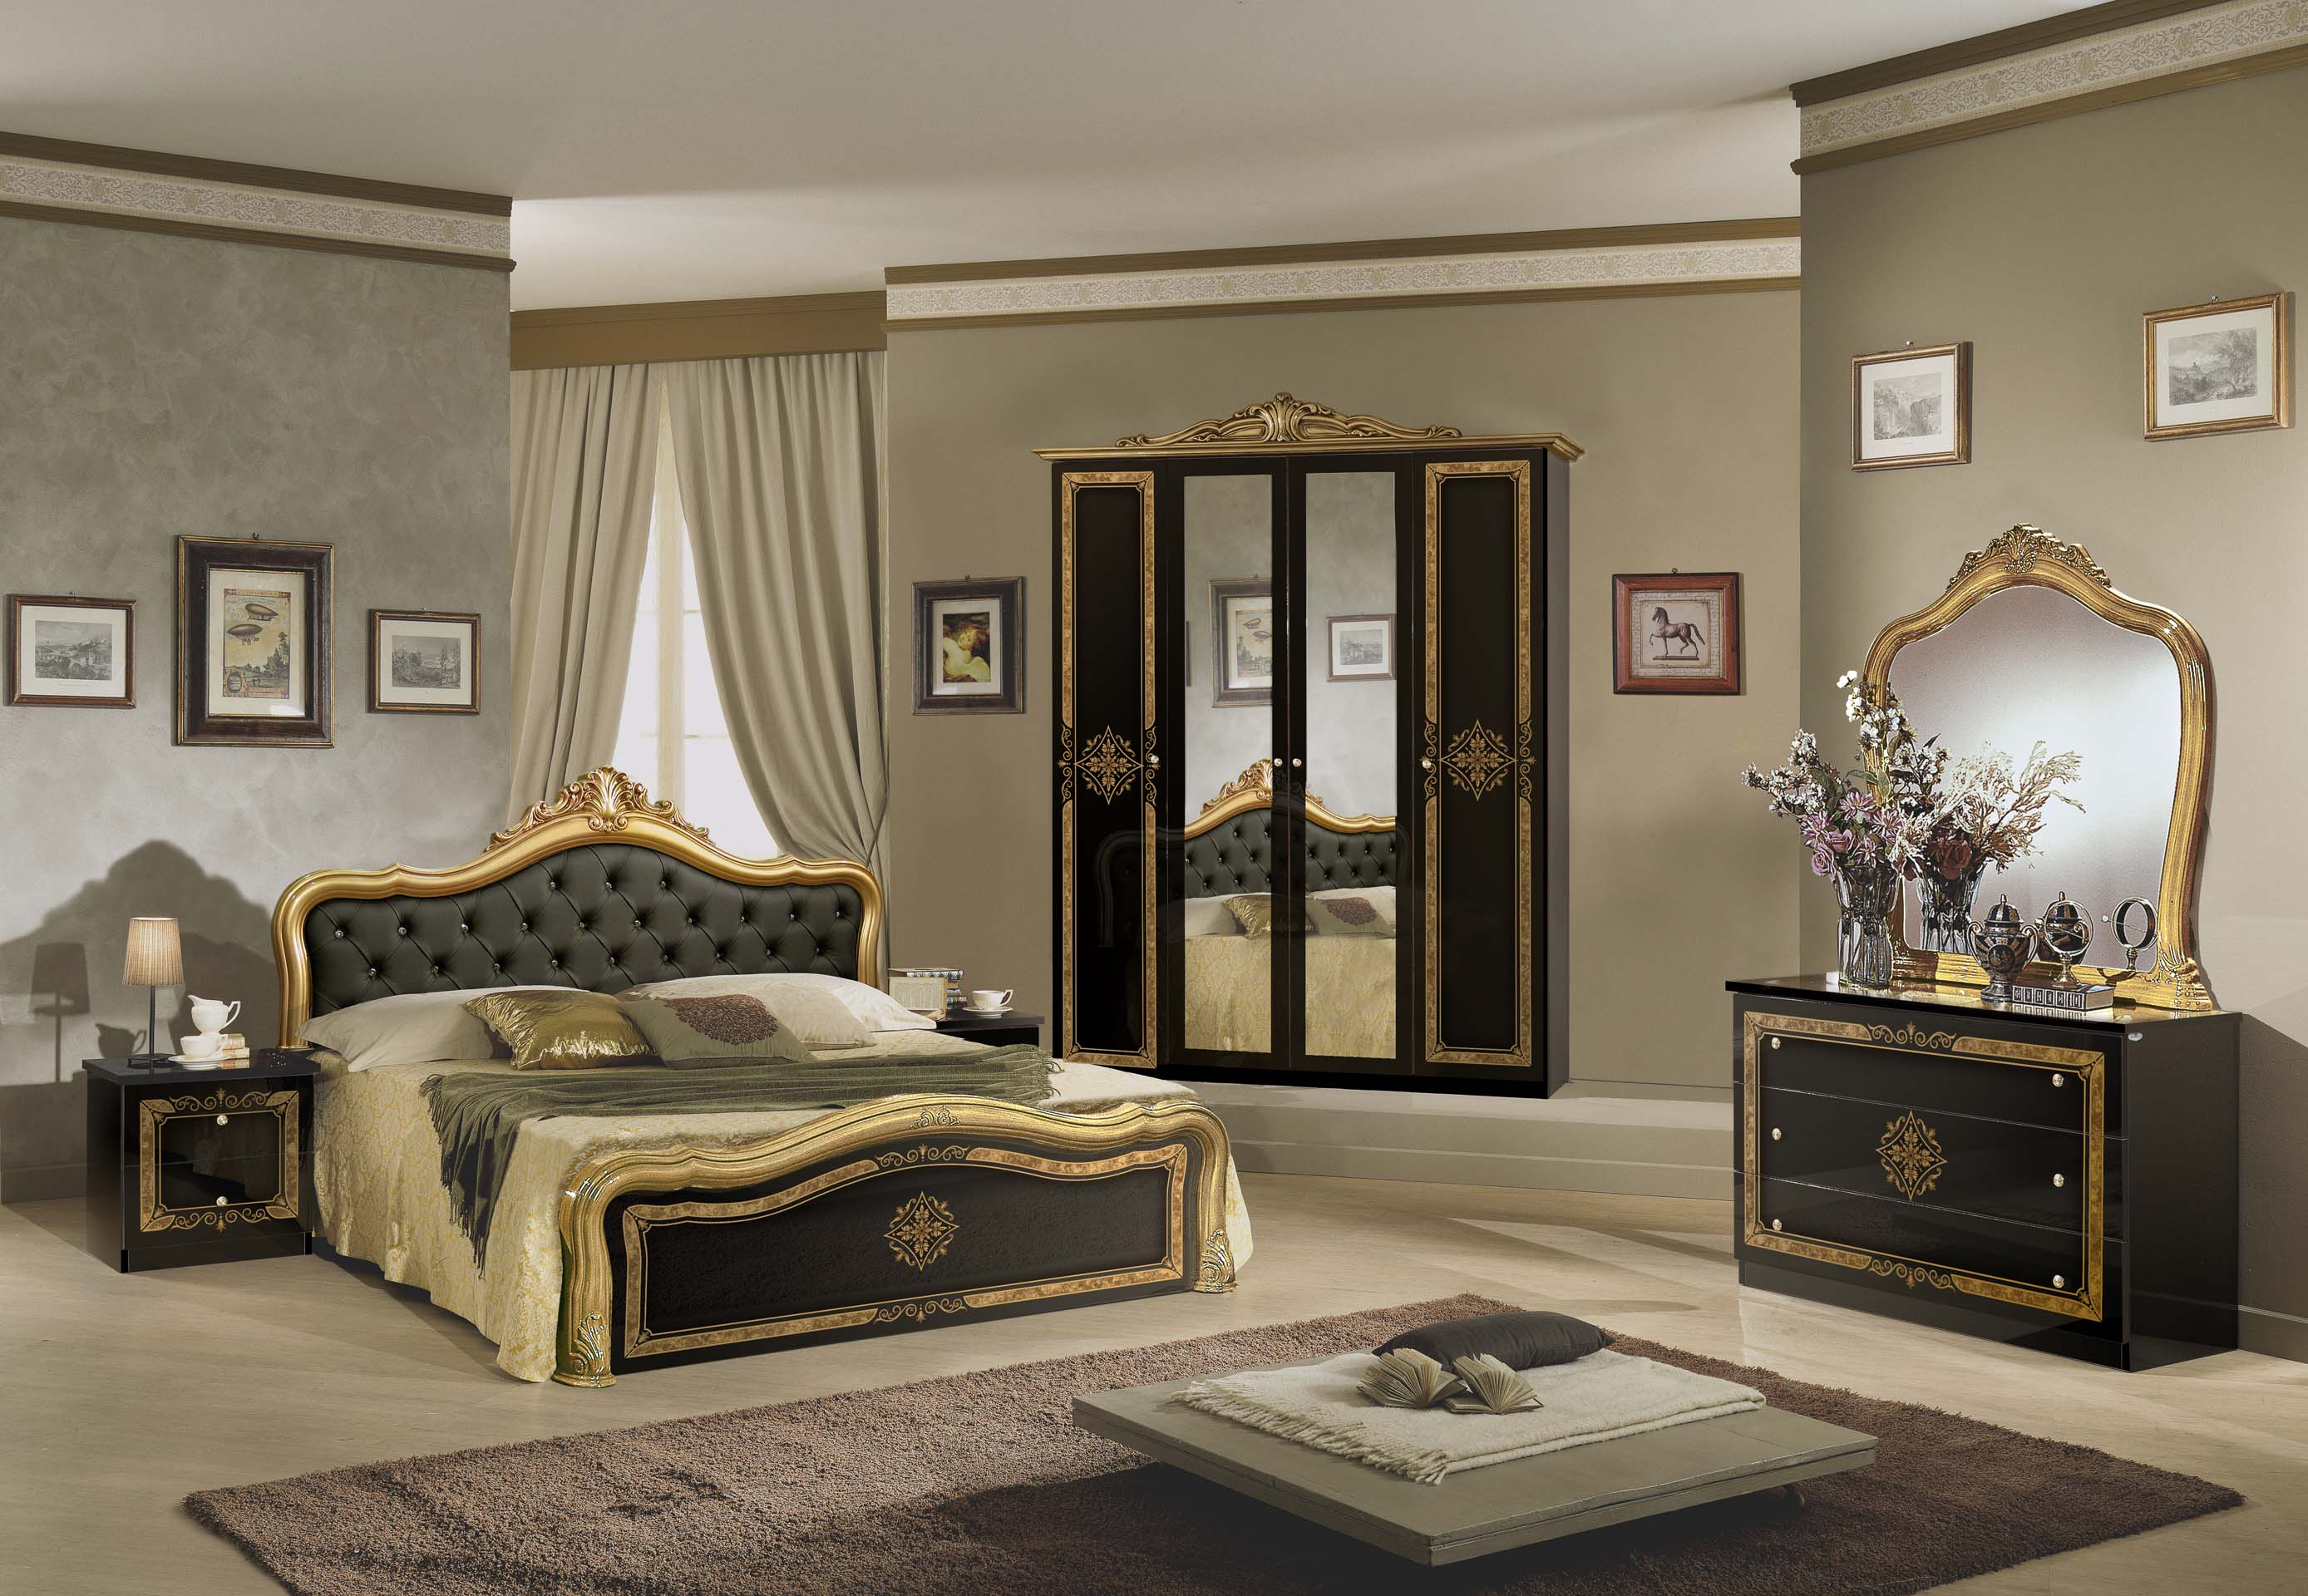 schlafzimmer lucy in beige creme klassisch braun designer italie dh luisa nec rb 4a. Black Bedroom Furniture Sets. Home Design Ideas